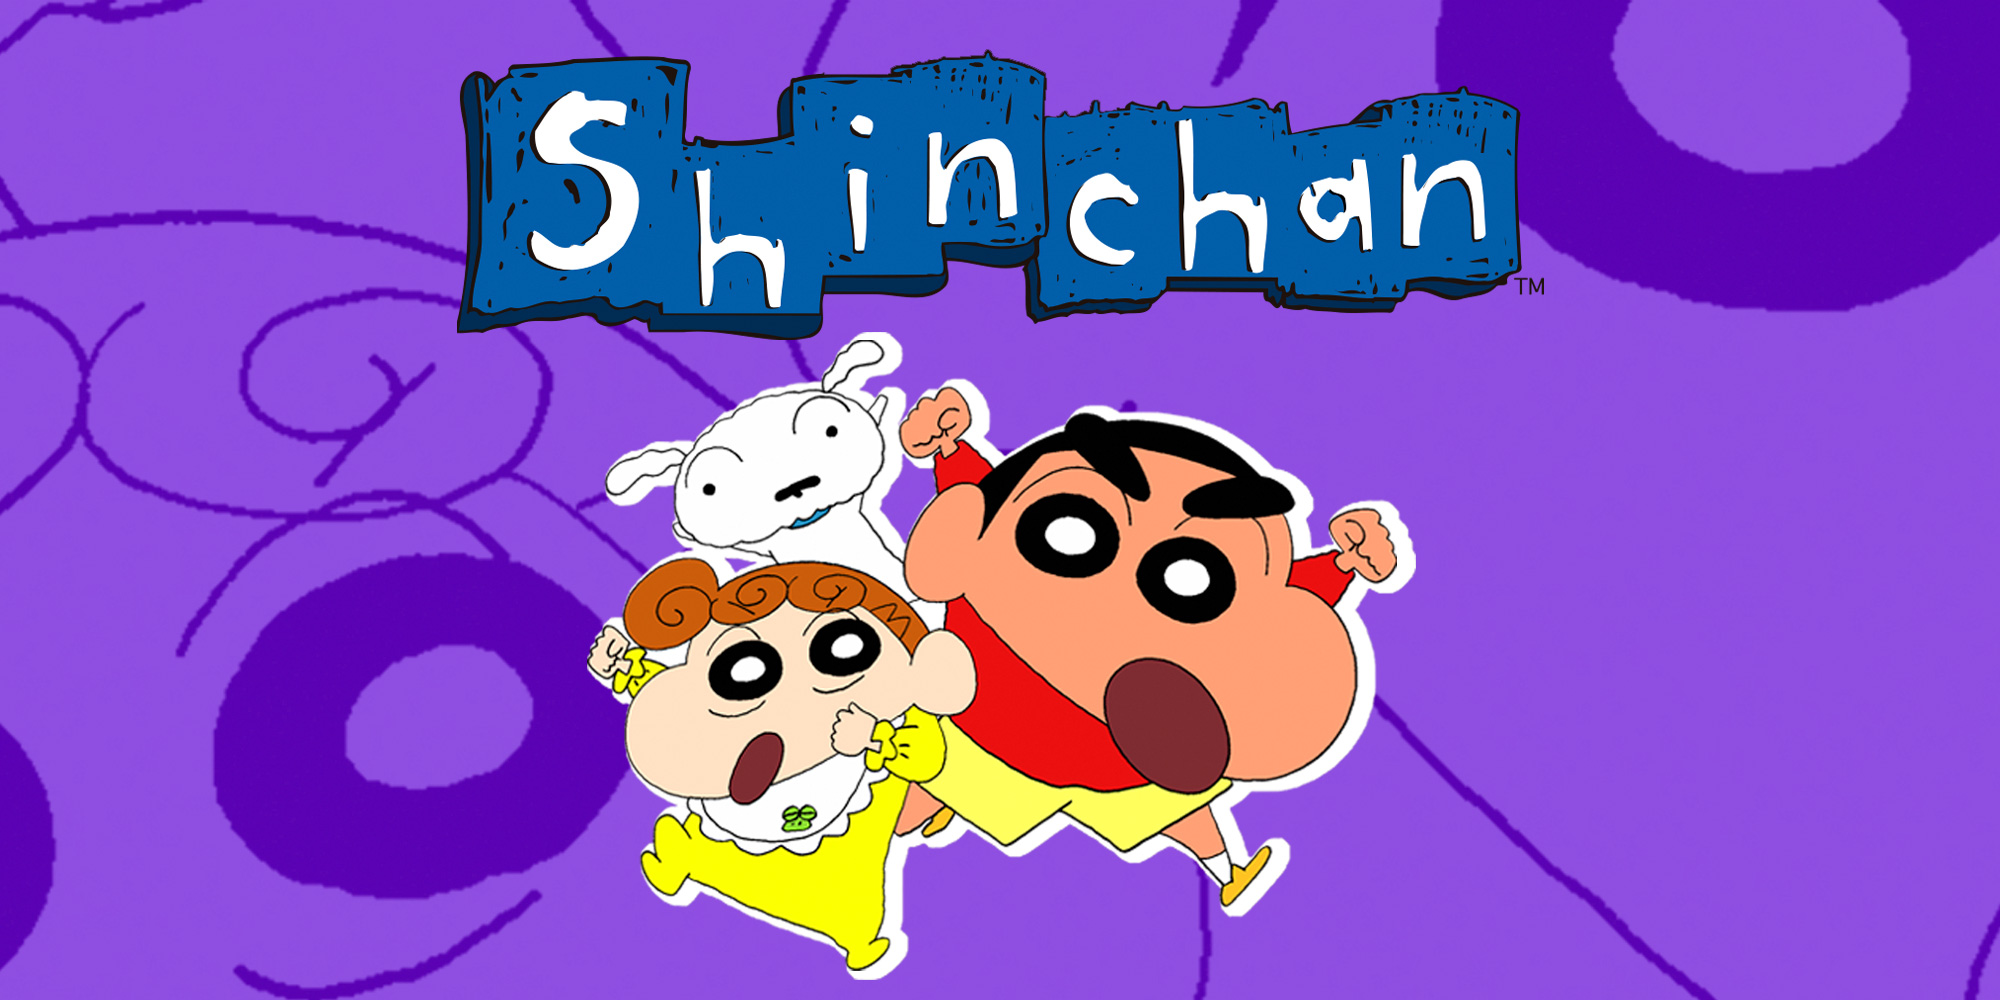 H2x1_3DSDV_ShinChan_Vol1.jpg